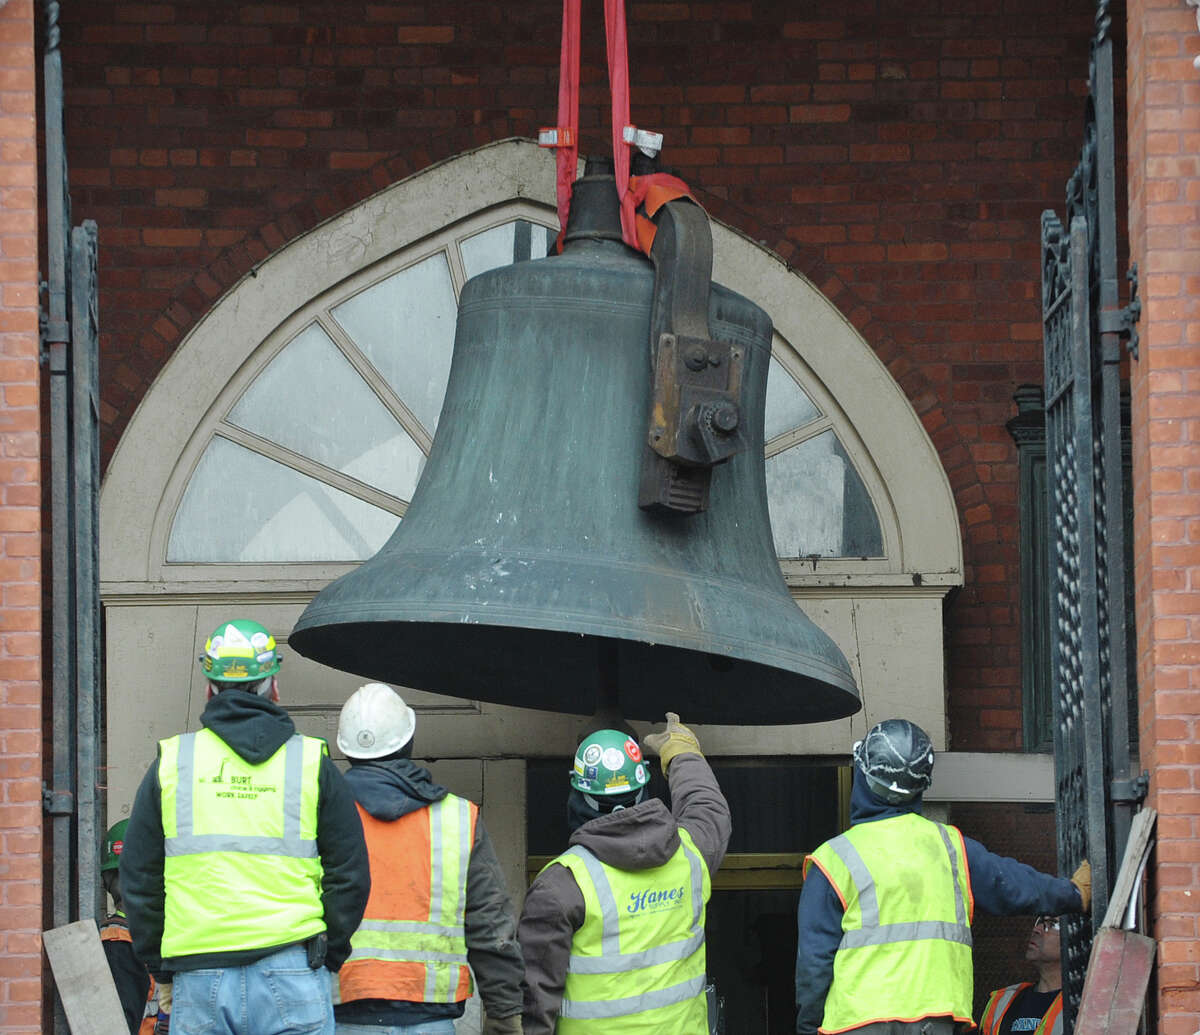 A large bell is lowered by a crane as workers removed the bell from the tower of the former St. Patrick's Church building on Tuesday, Feb. 19, 2013, in Watervliet, NY. (Paul Buckowski / Times Union)